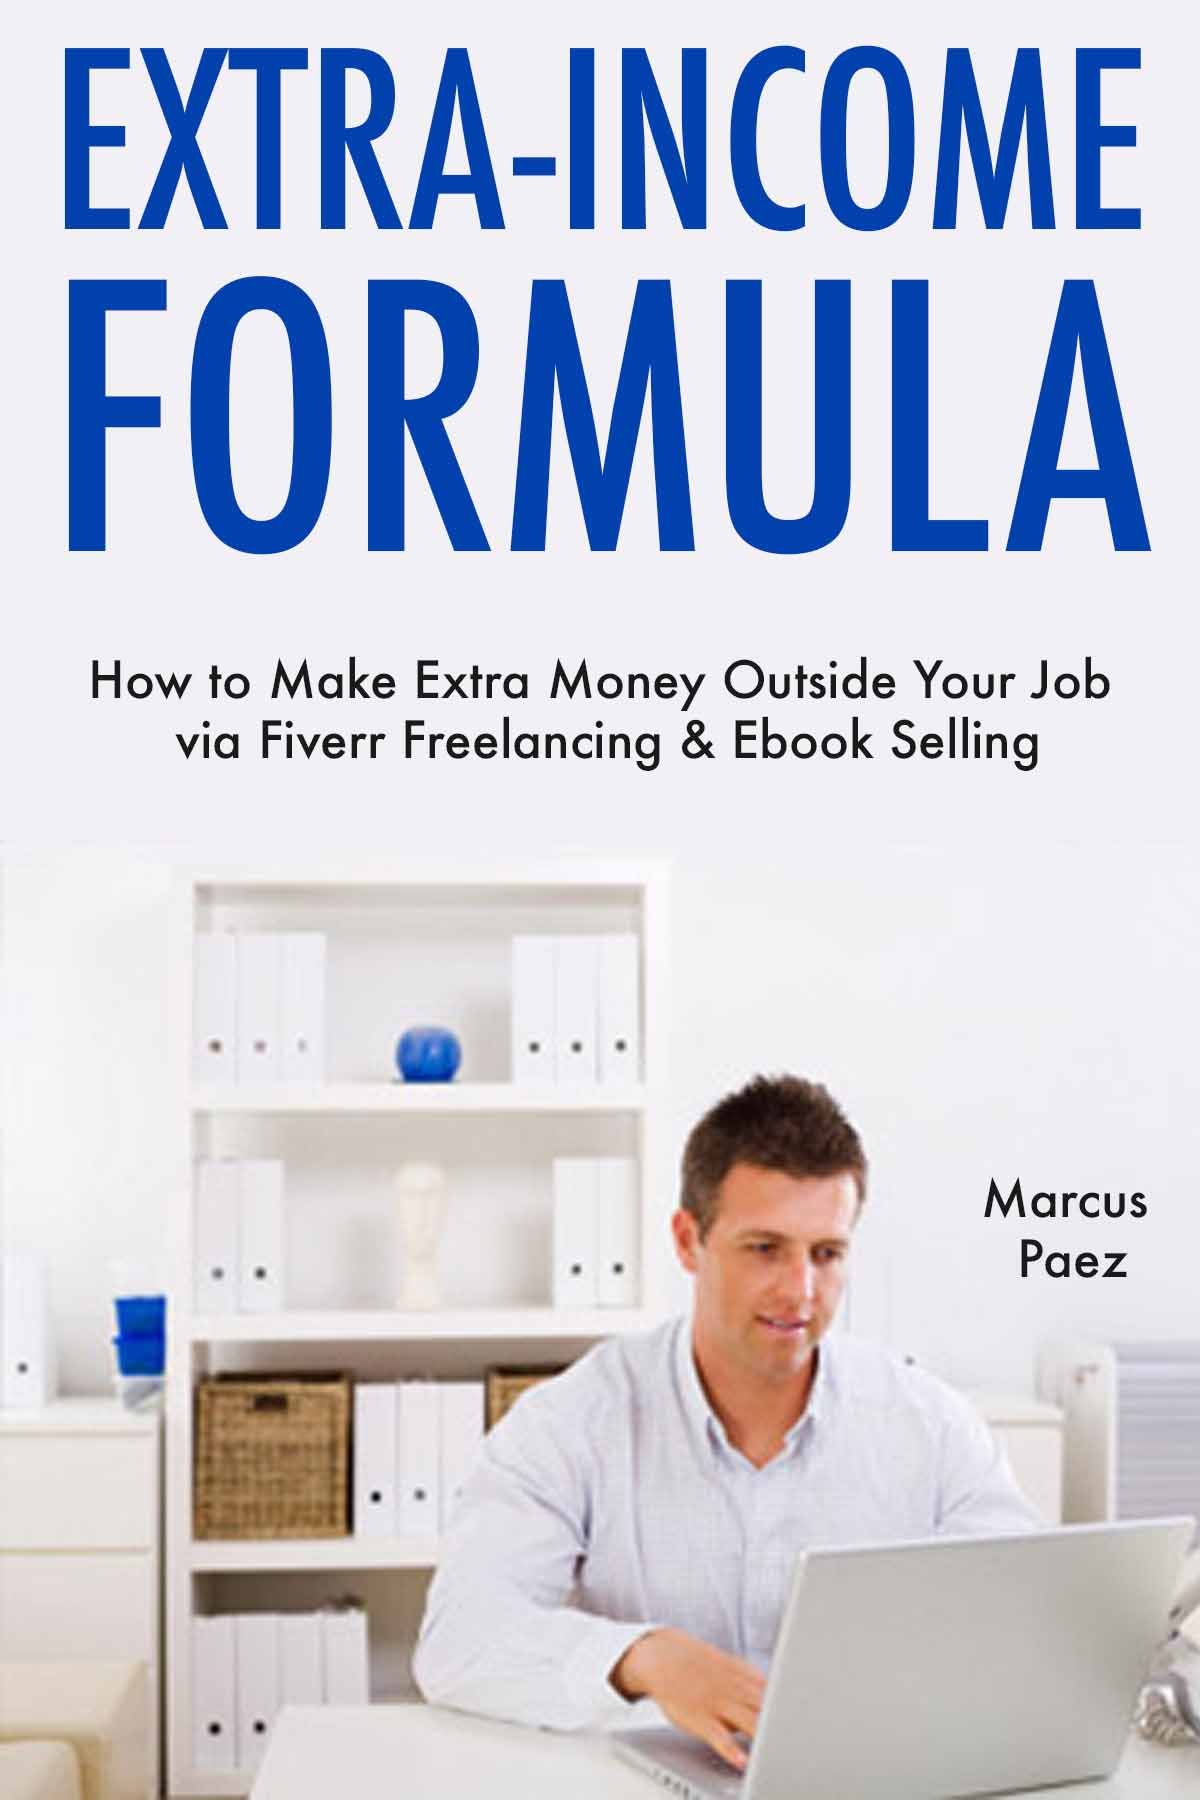 Extra-Income Formula: How to Make Extra Money Outside Your Job via Fiverr Freelancing & Ebook Selling